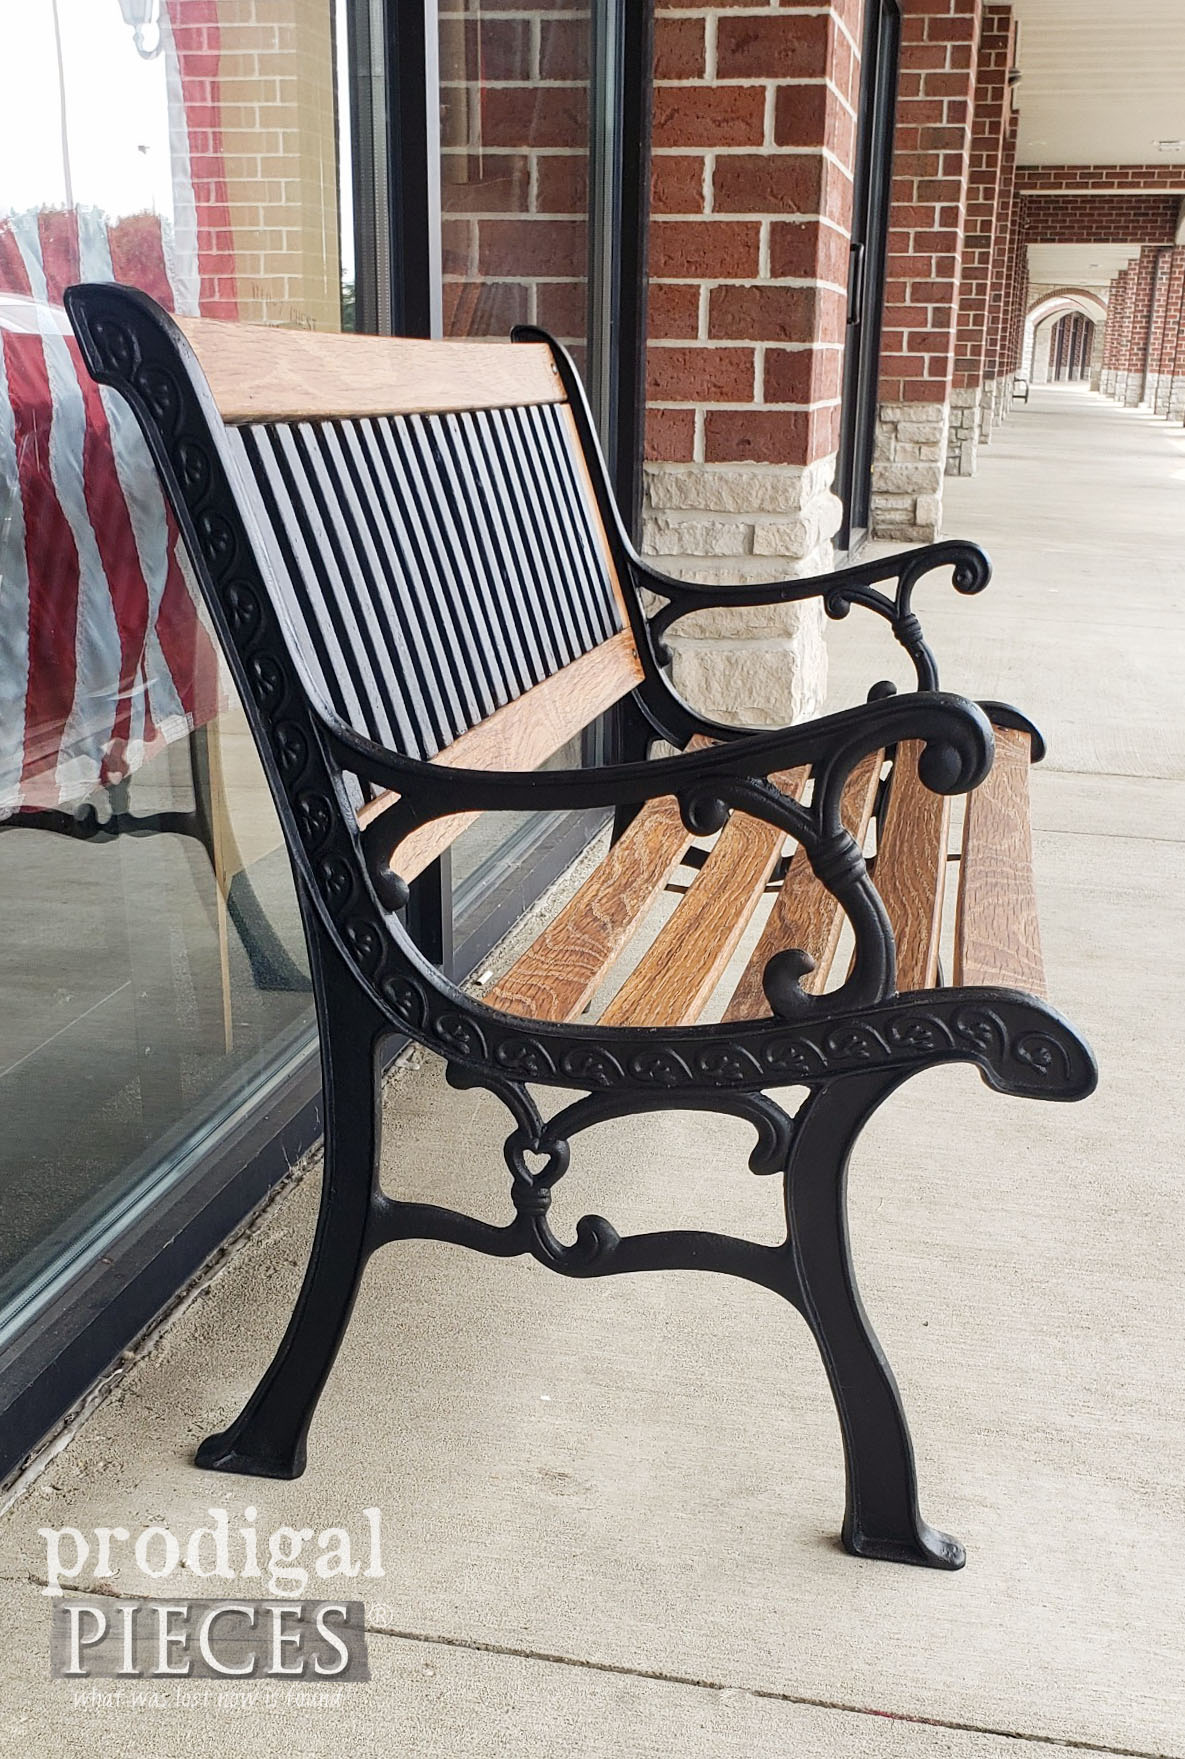 Refinished Wrought Iron Bench Side Refinished by Larissa of Prodigal Pieces | prodigalpieces.com #prodigalpieces